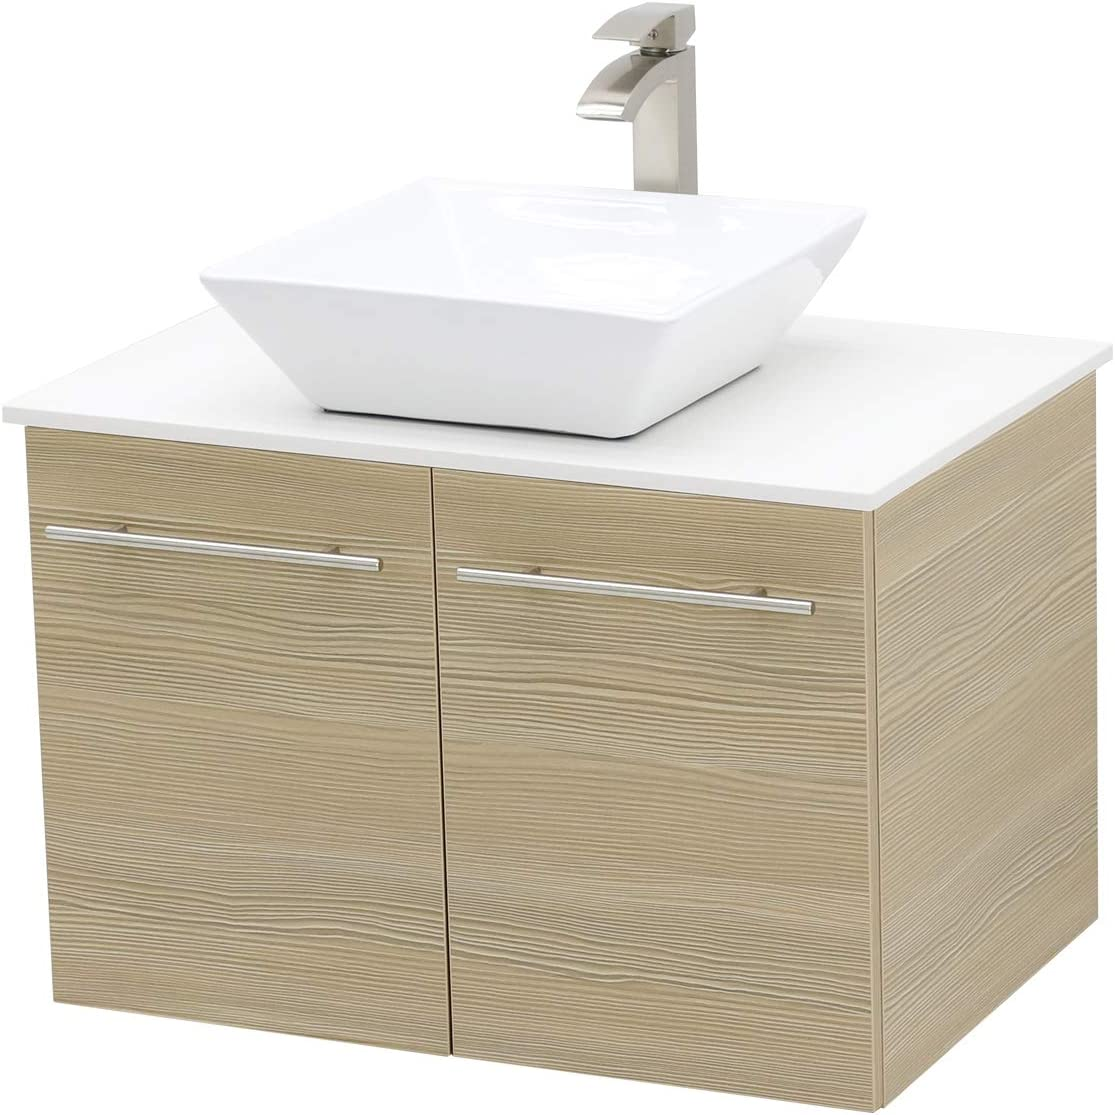 WindBay Wall Mount Floating Bathroom Vanity Sink Set. Tan Vanity, White Flat Stone Countertop Ceramic Sink – 30